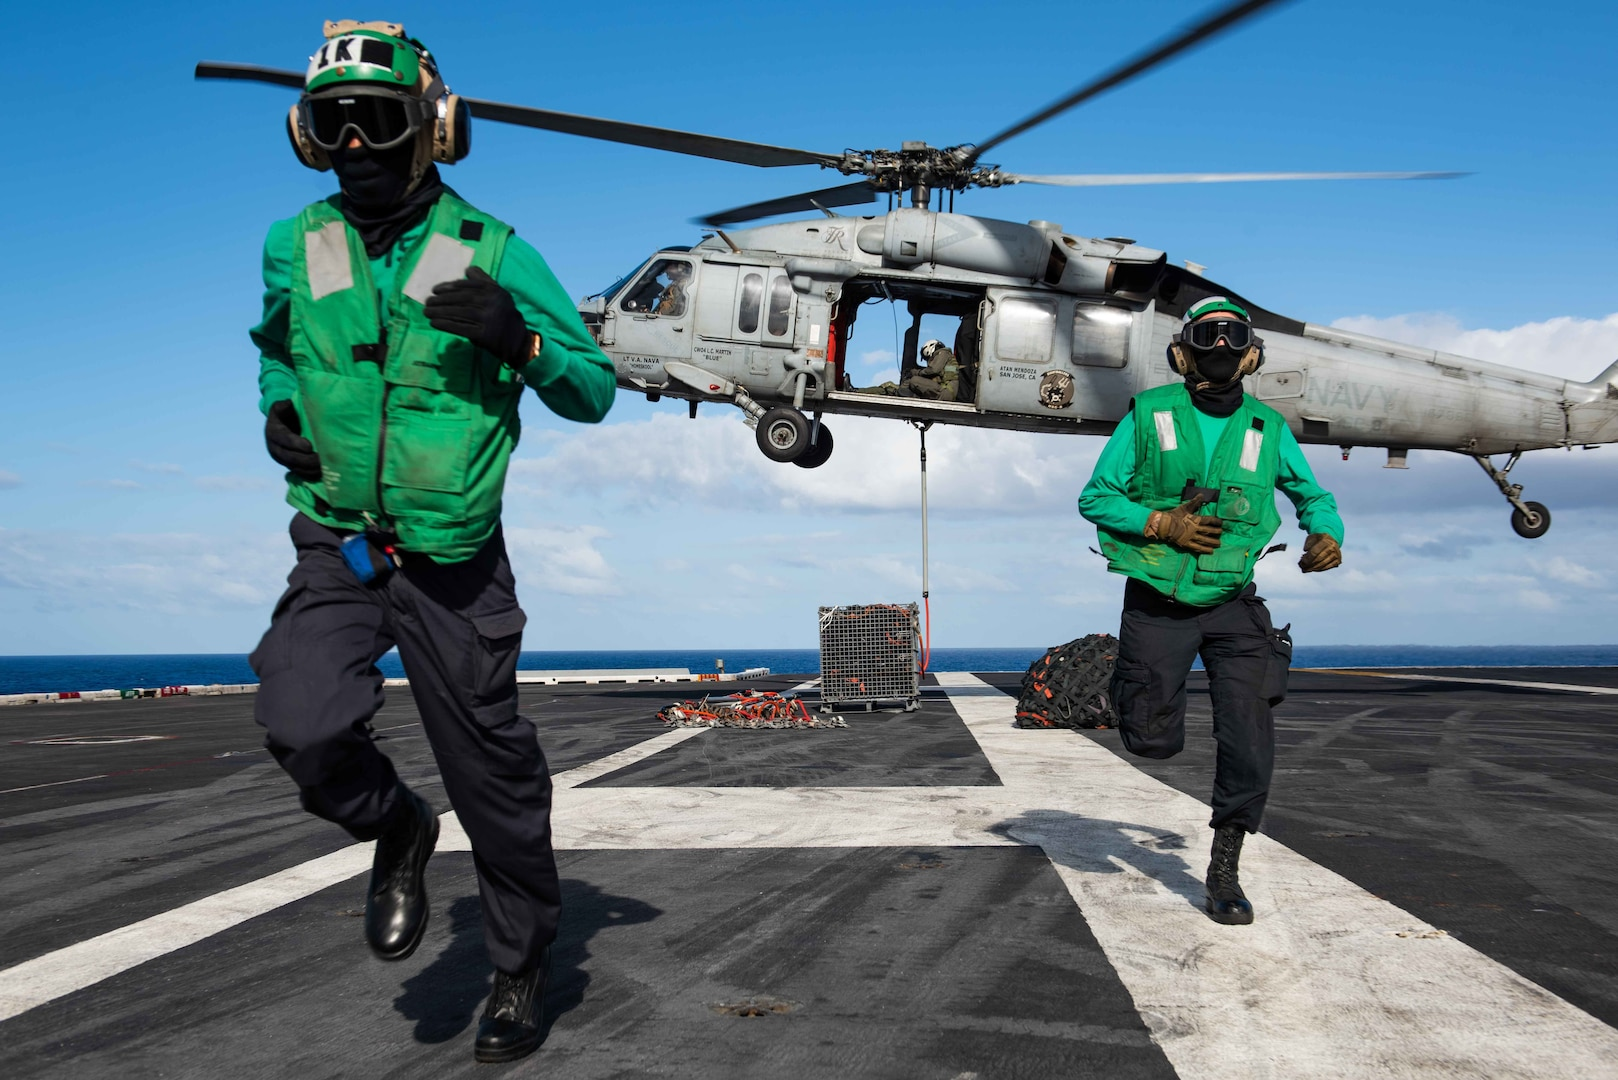 """Sailors move away from MH-60S Sea Hawk helicopter assigned to """"Eightballers"""" of Helicopter Sea Combat Squadron 8 as it lifts cargo from flight deck of USS Theodore Roosevelt during replenishment-at-sea with USNS Henry J. Kaiser, Pacific Ocean, July 1, 2020 (U.S. Navy/Erik Melgar)"""